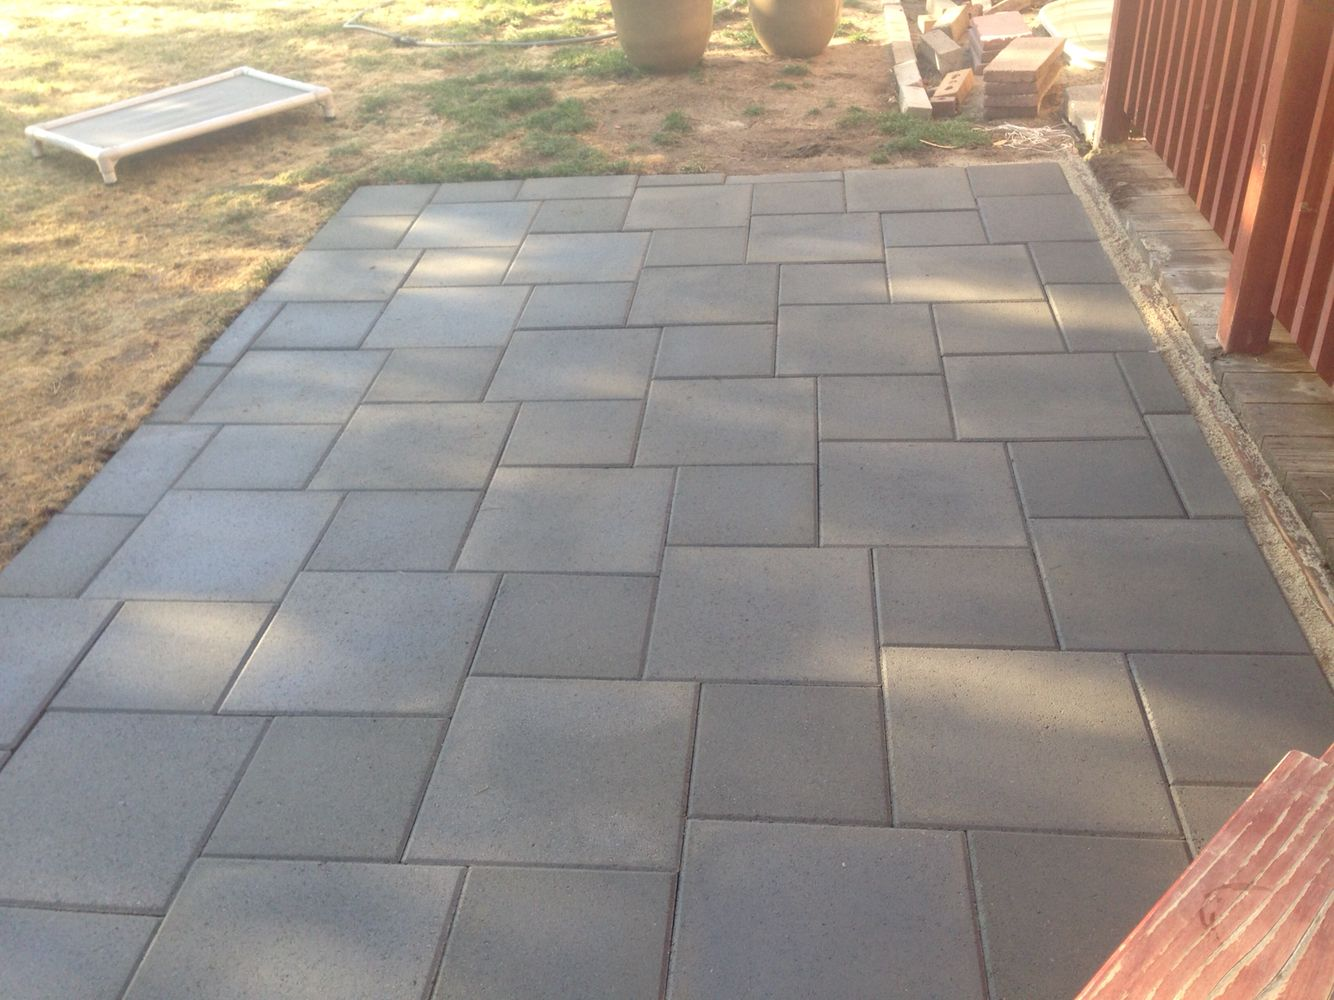 Patio of inexpensive concrete pavers   Outdoors  Patio